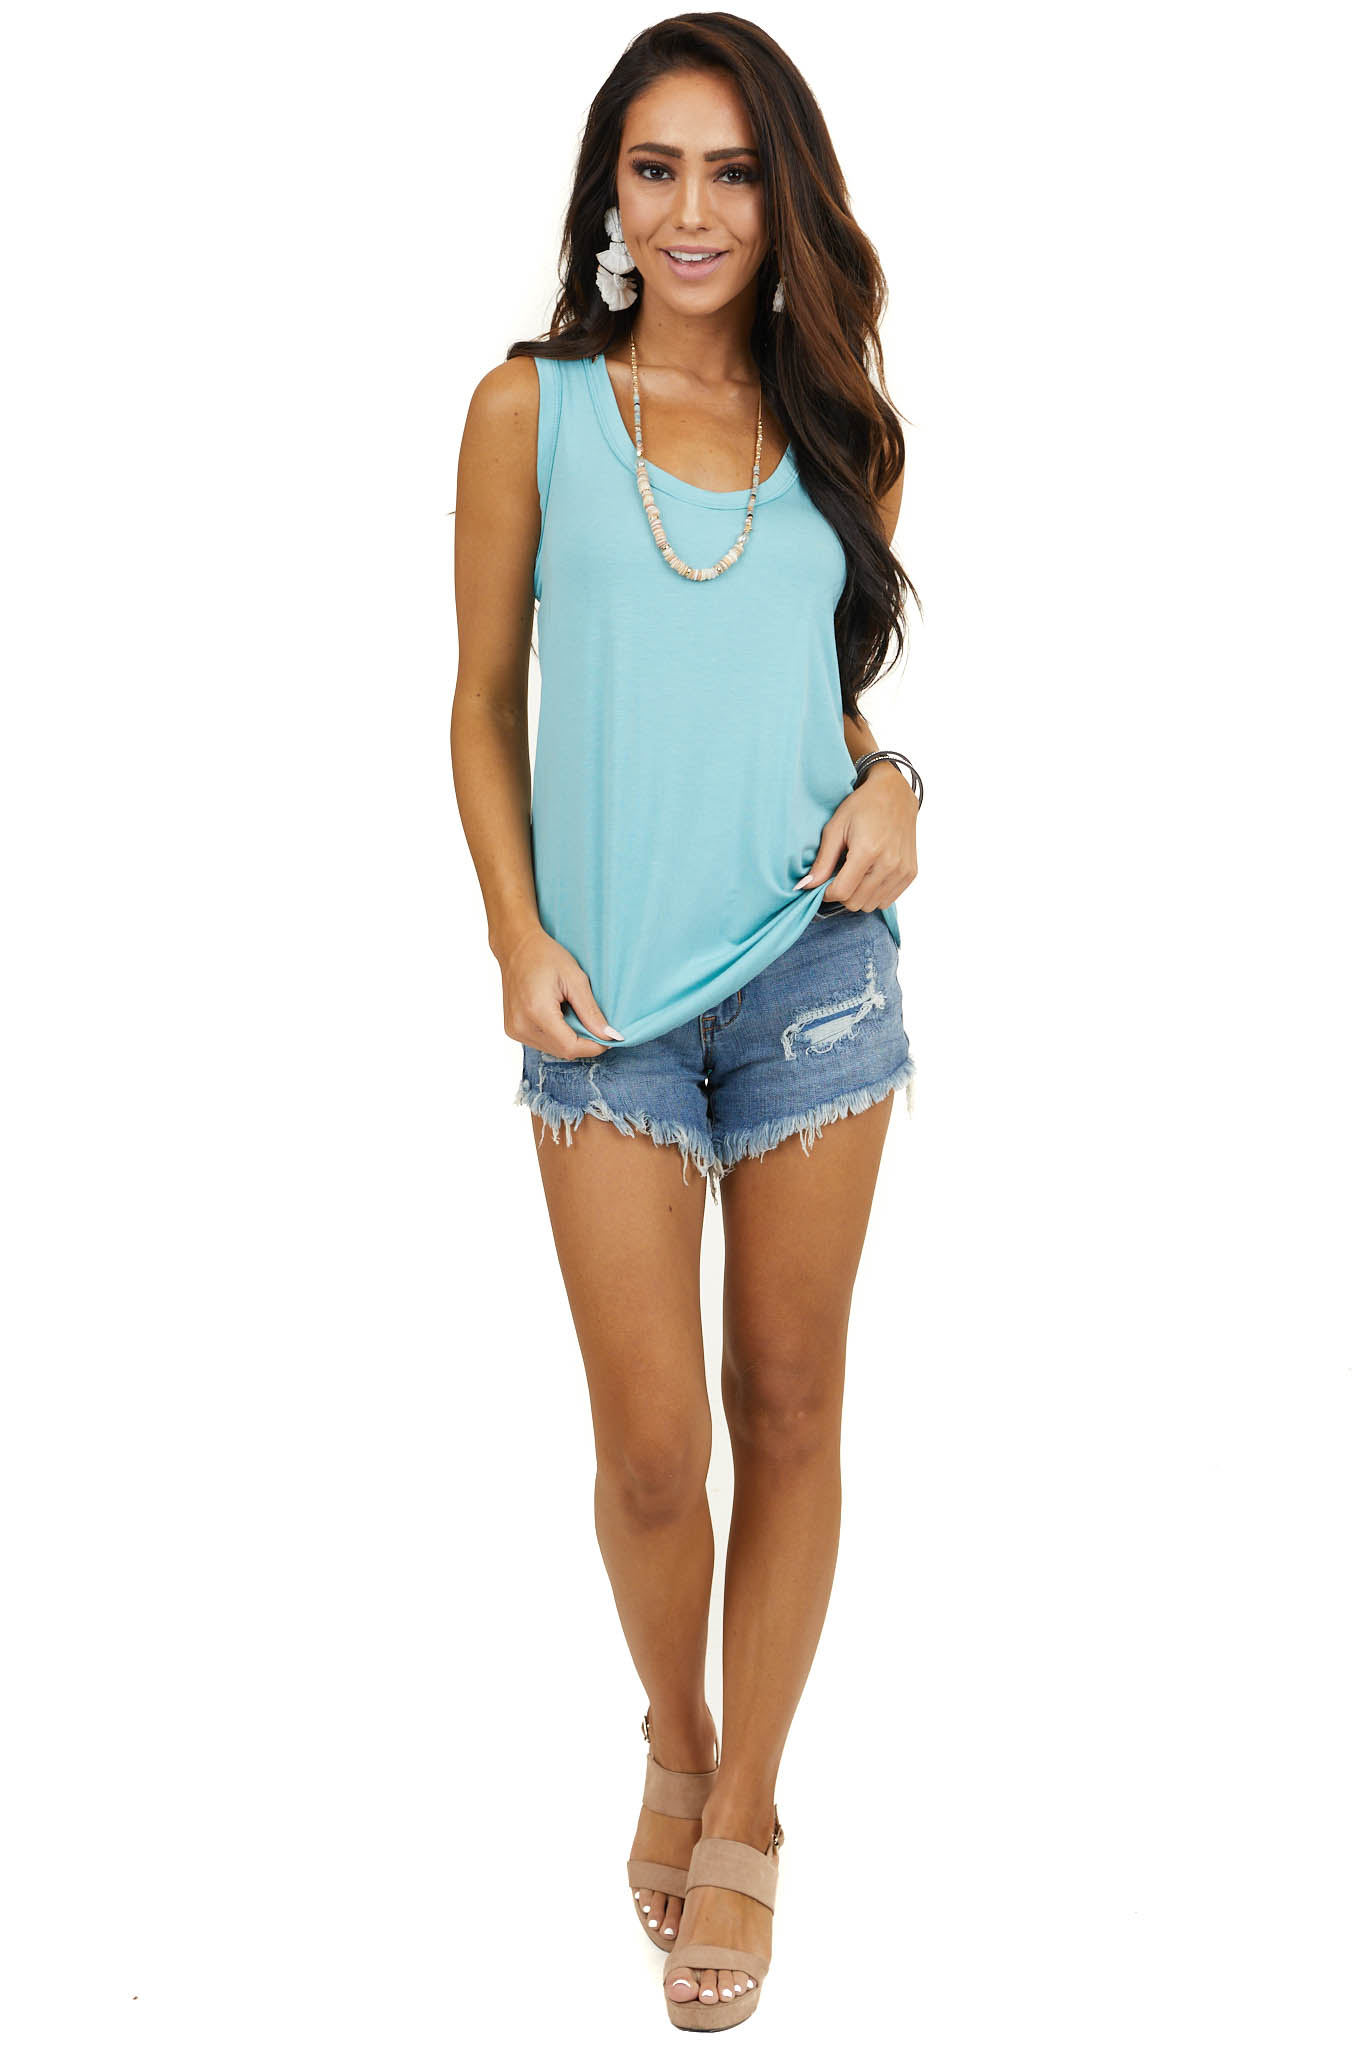 Light Teal Sleeveless Knit Top with Rounded Neckline